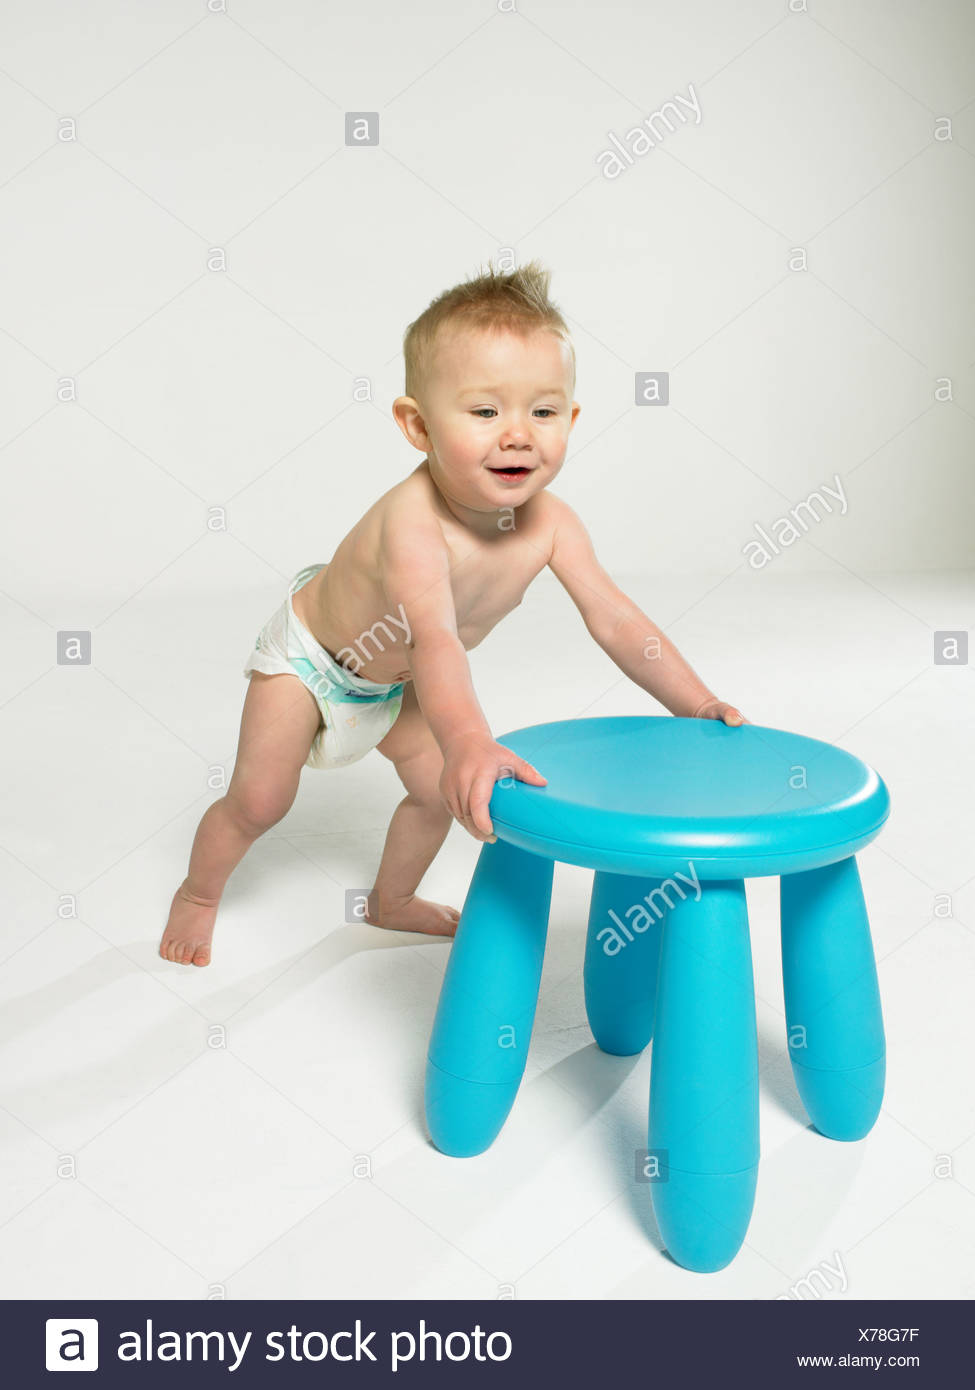 Baby Support Seat Stock Photos & Baby Support Seat Stock Images - Alamy